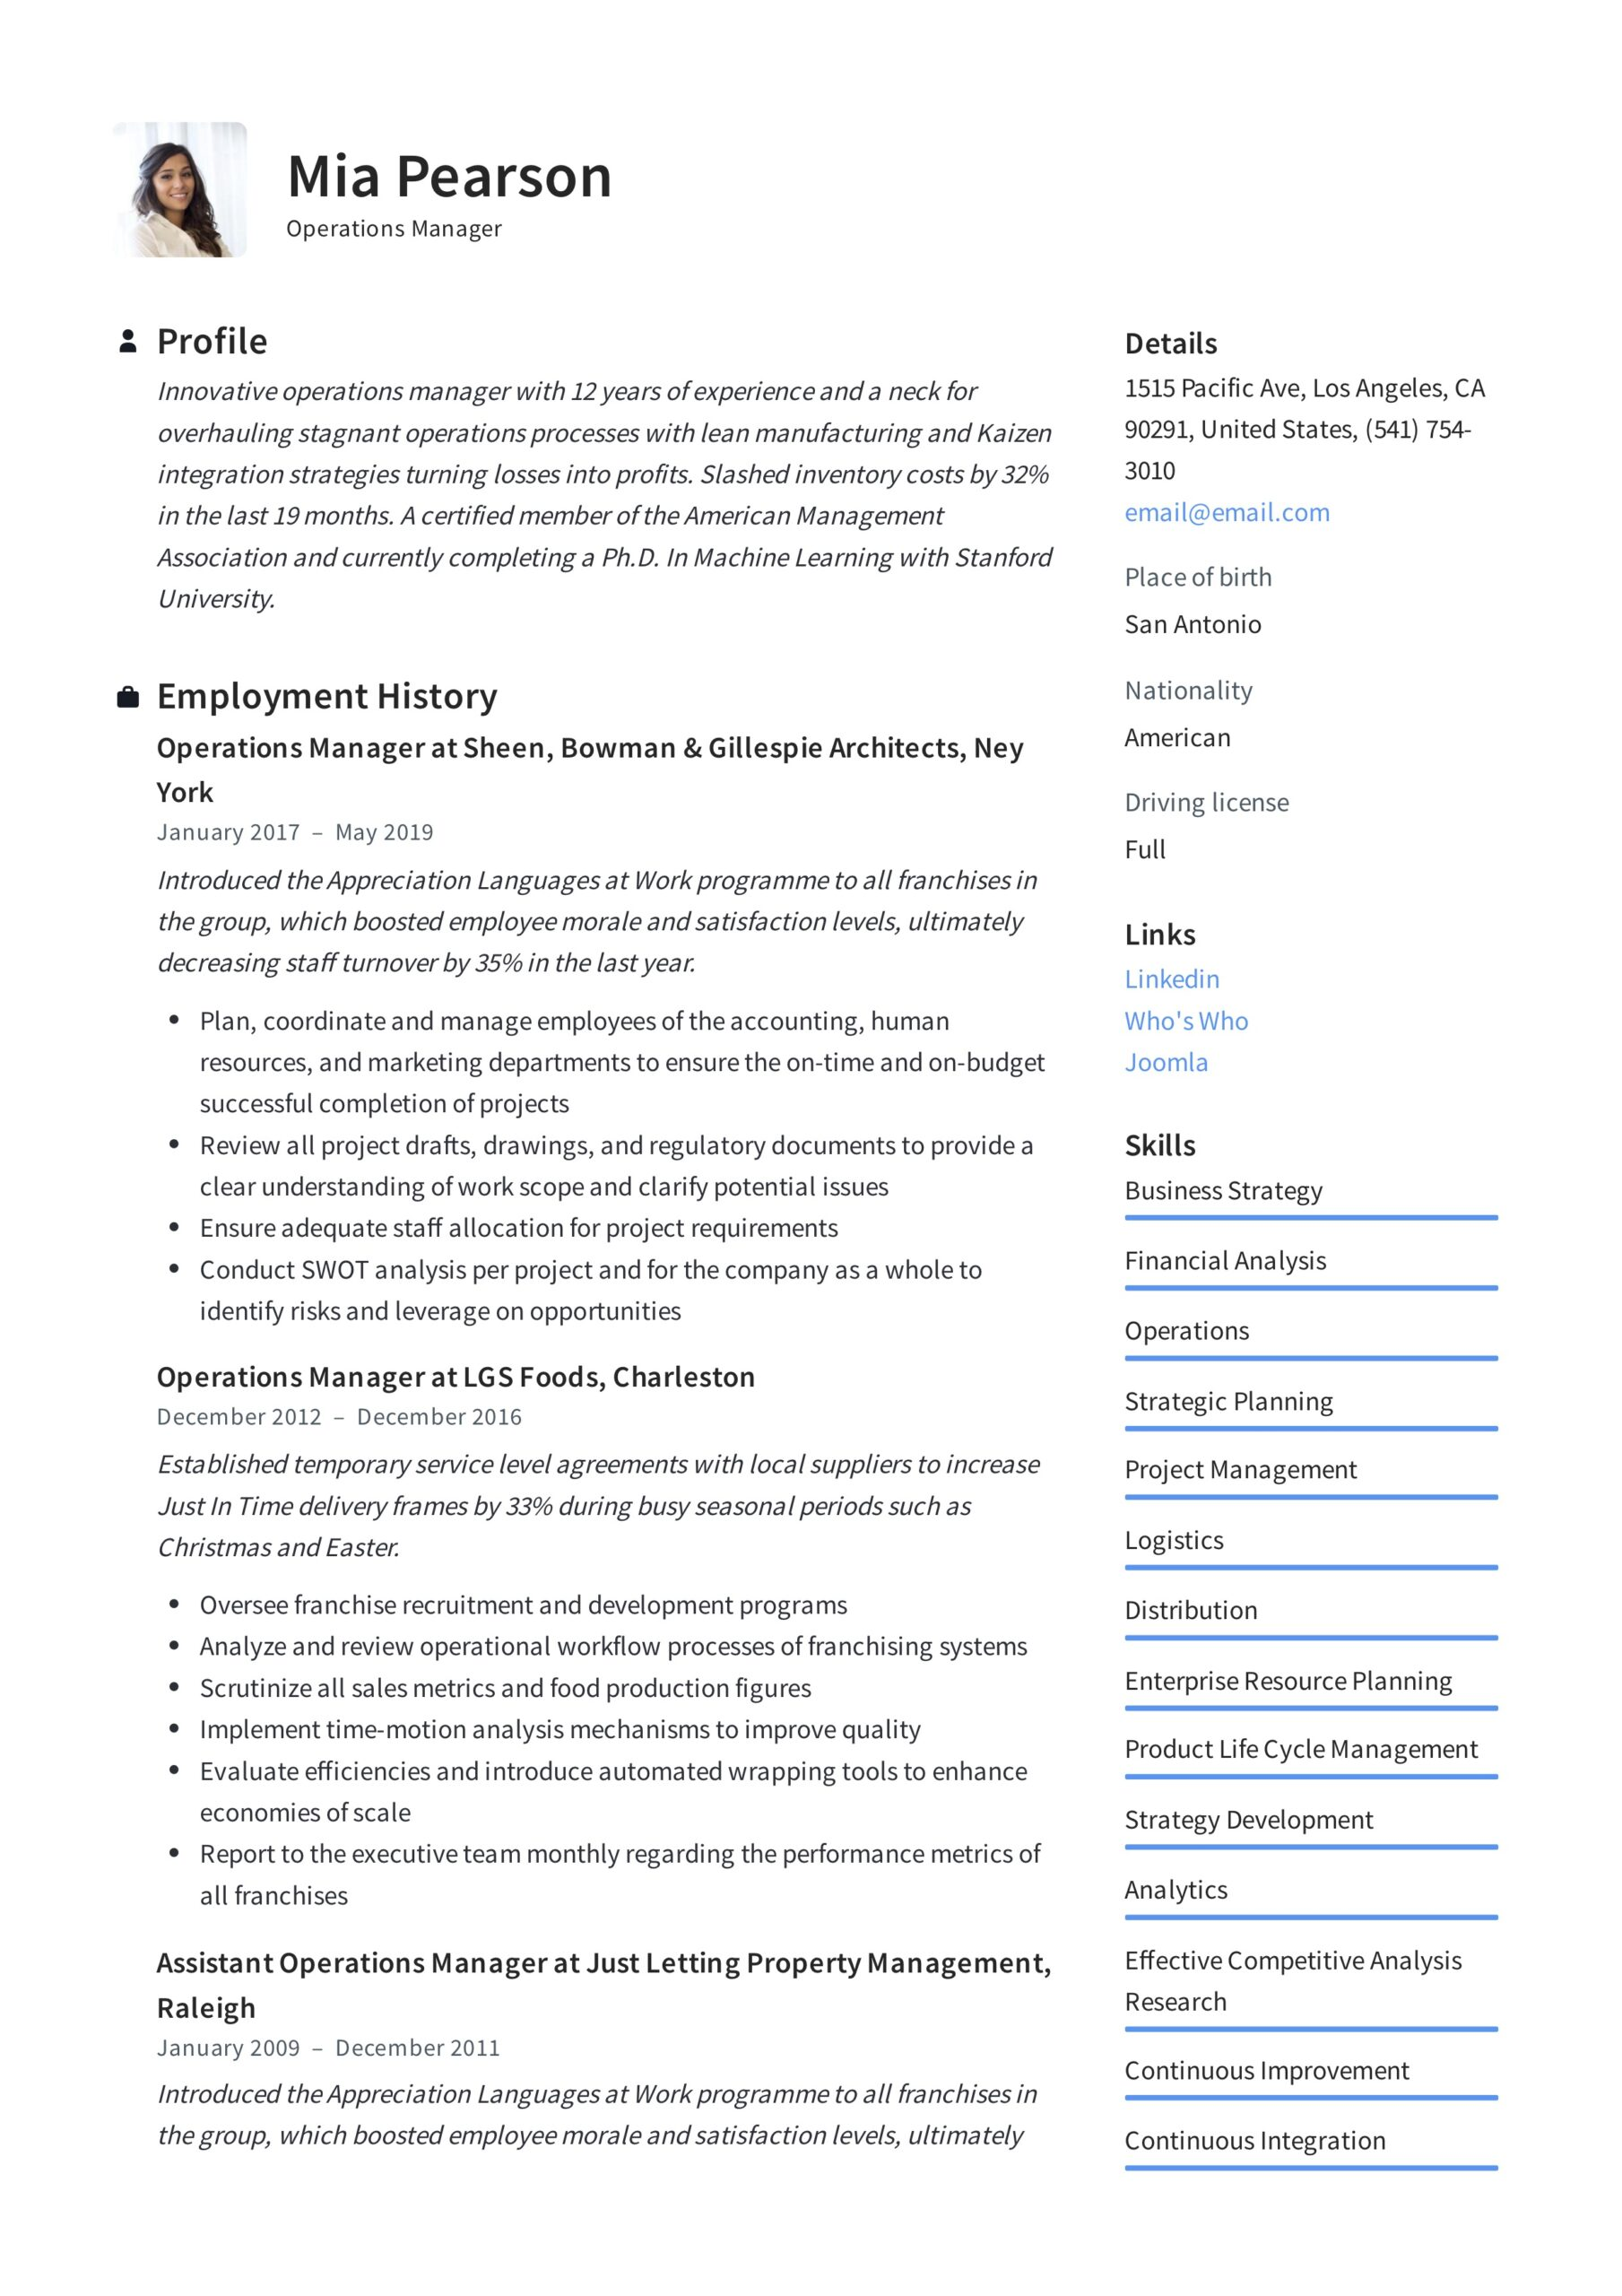 operations manager resume writing guide examples pdf example housekeeping skills sample Resume Operations Manager Resume